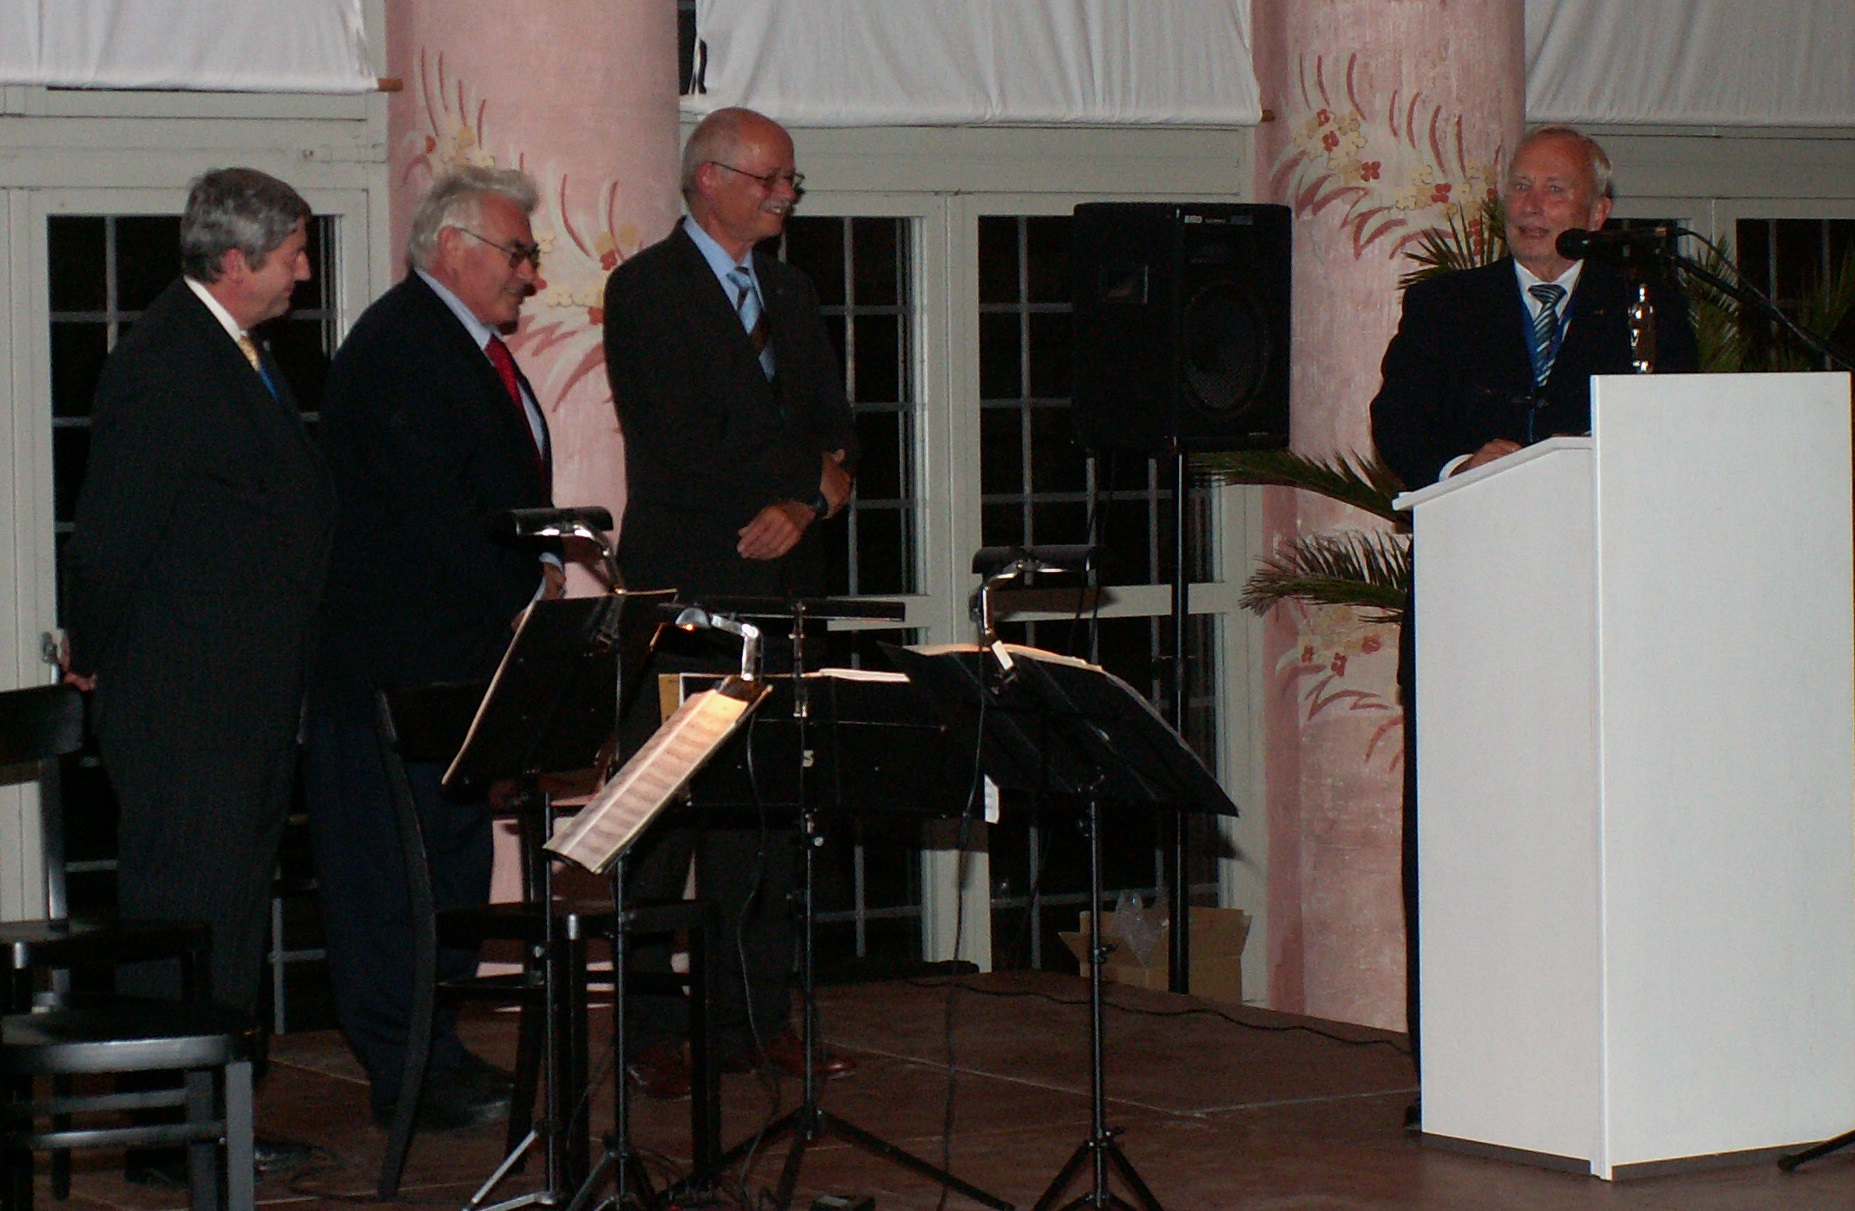 Prof. Jean-Pierre Kruth, Prof. Dieter Schuöcker and Prof. Geiger with the Knight of Laser Technology 2007: Hans Kurt Tönshoff (from left to right)